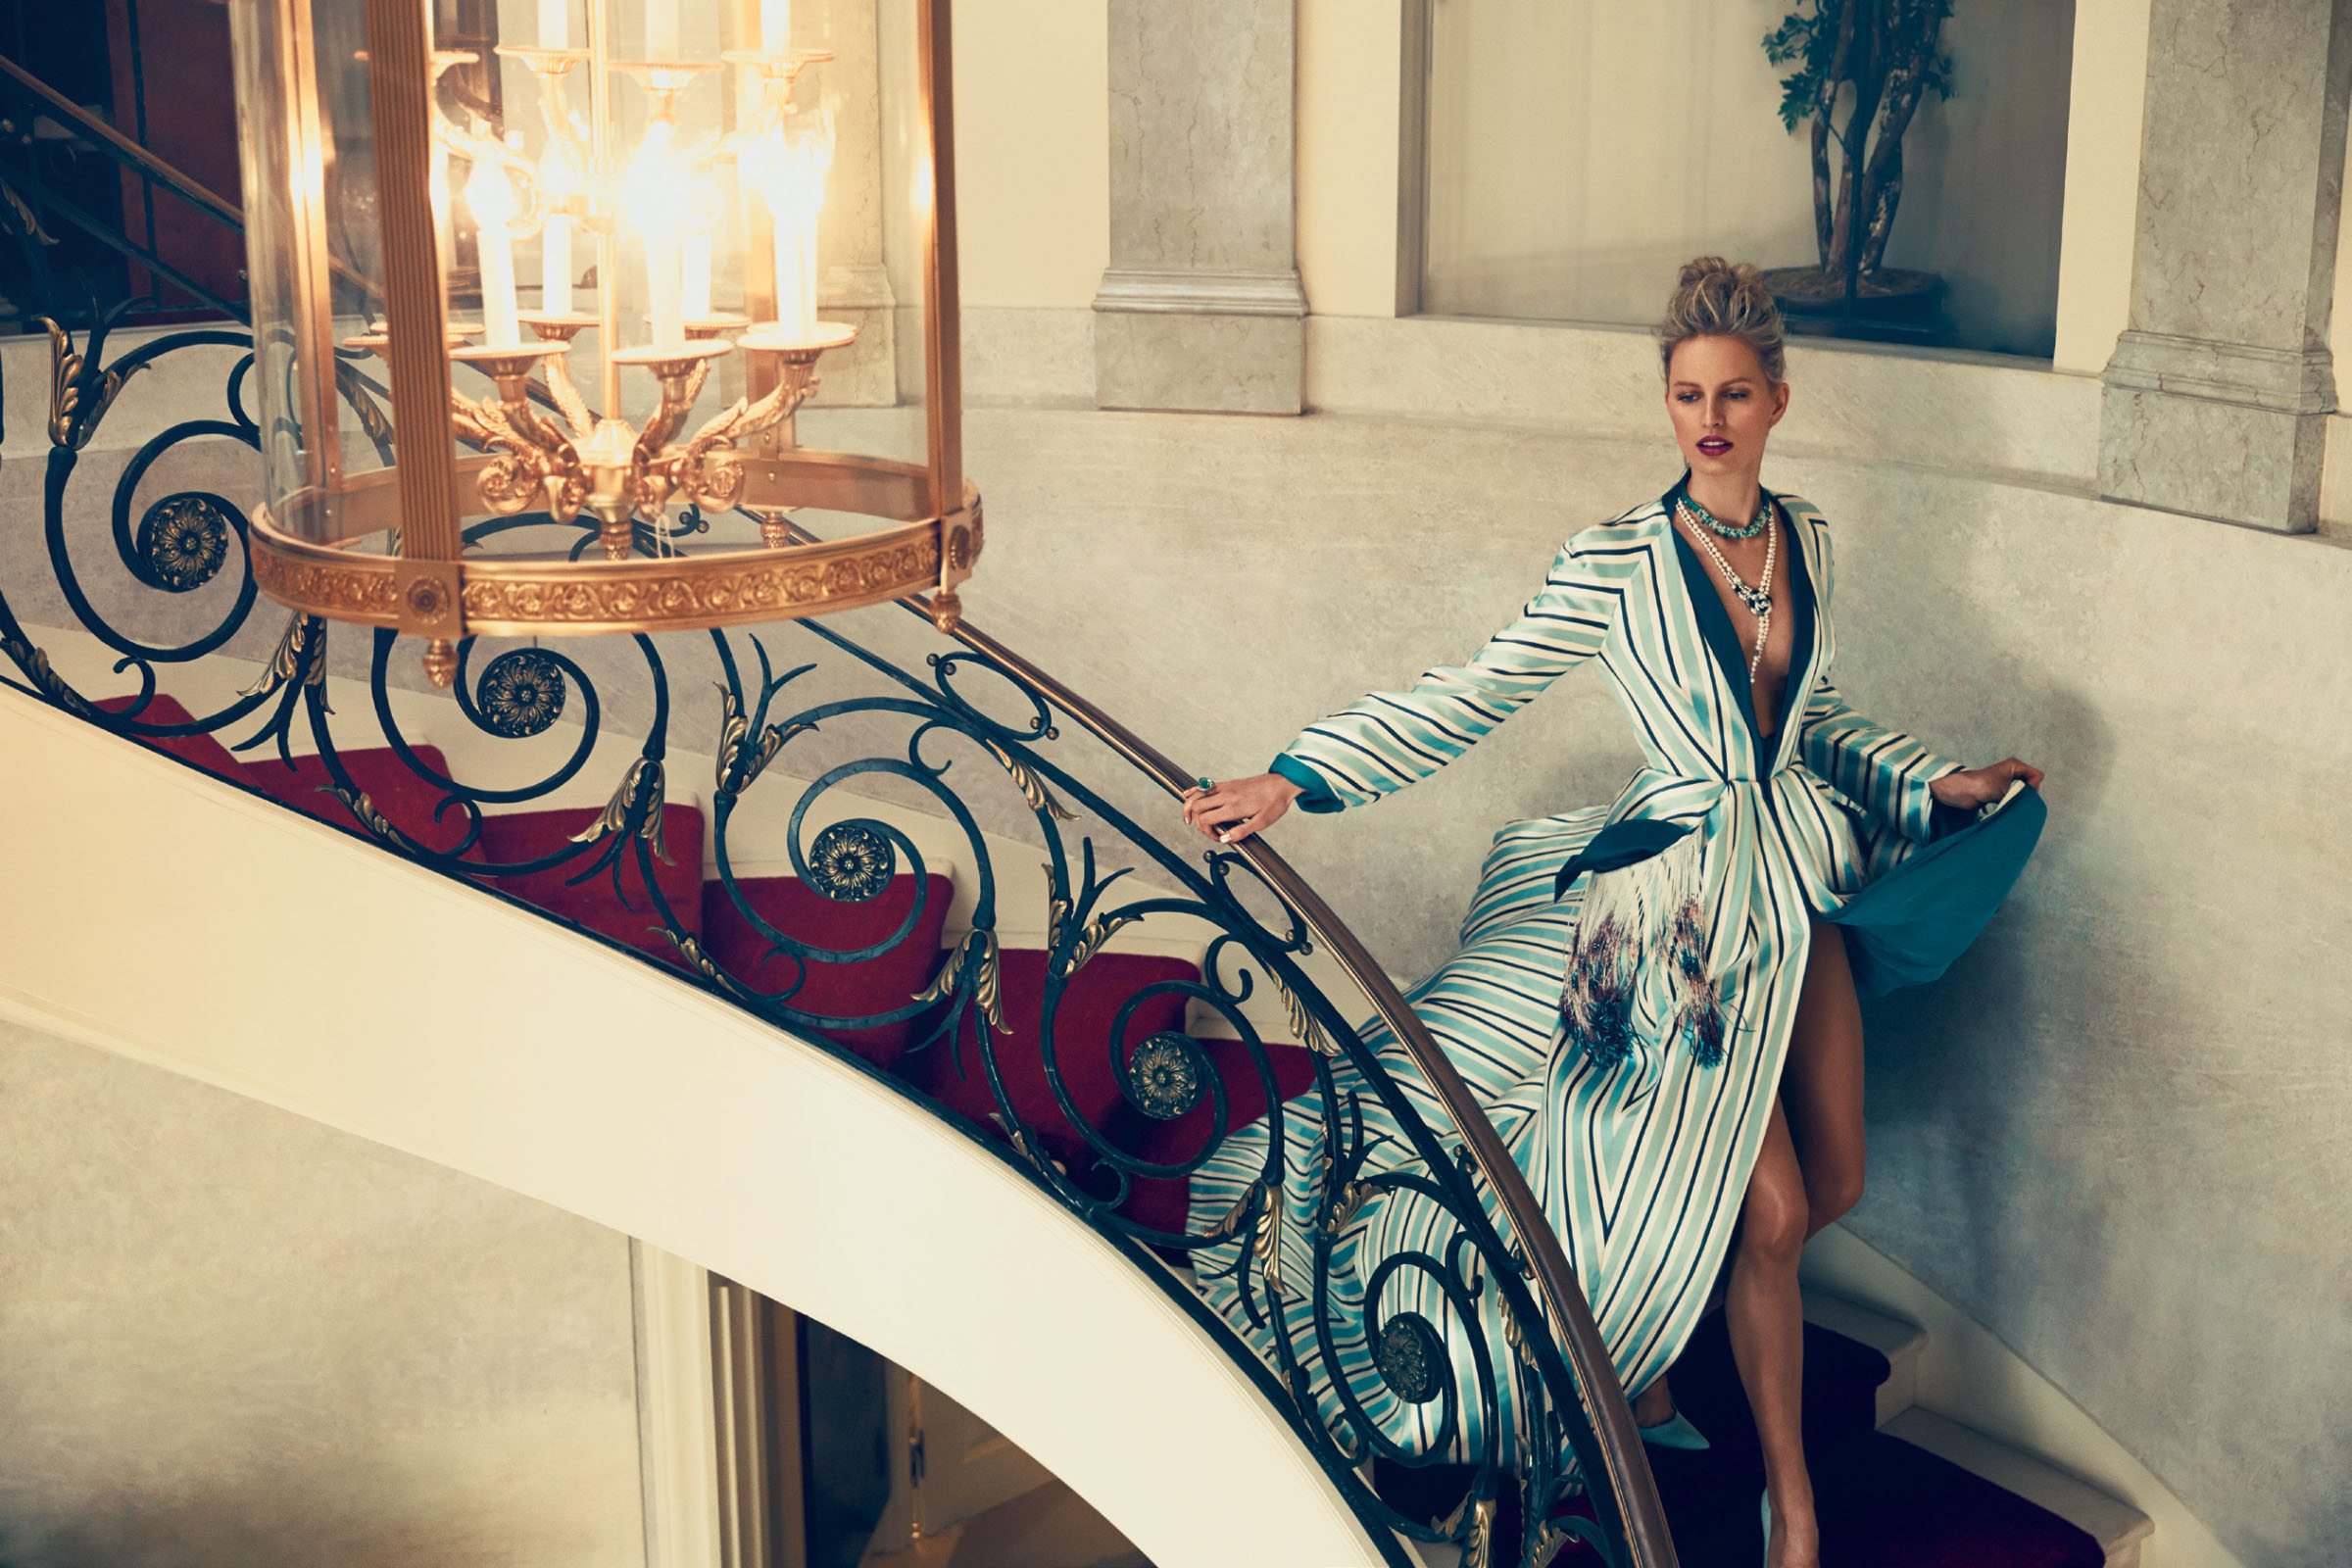 karolina-kurkova-by-norman-jean-roy-for-tatler-russia-may-2014-4